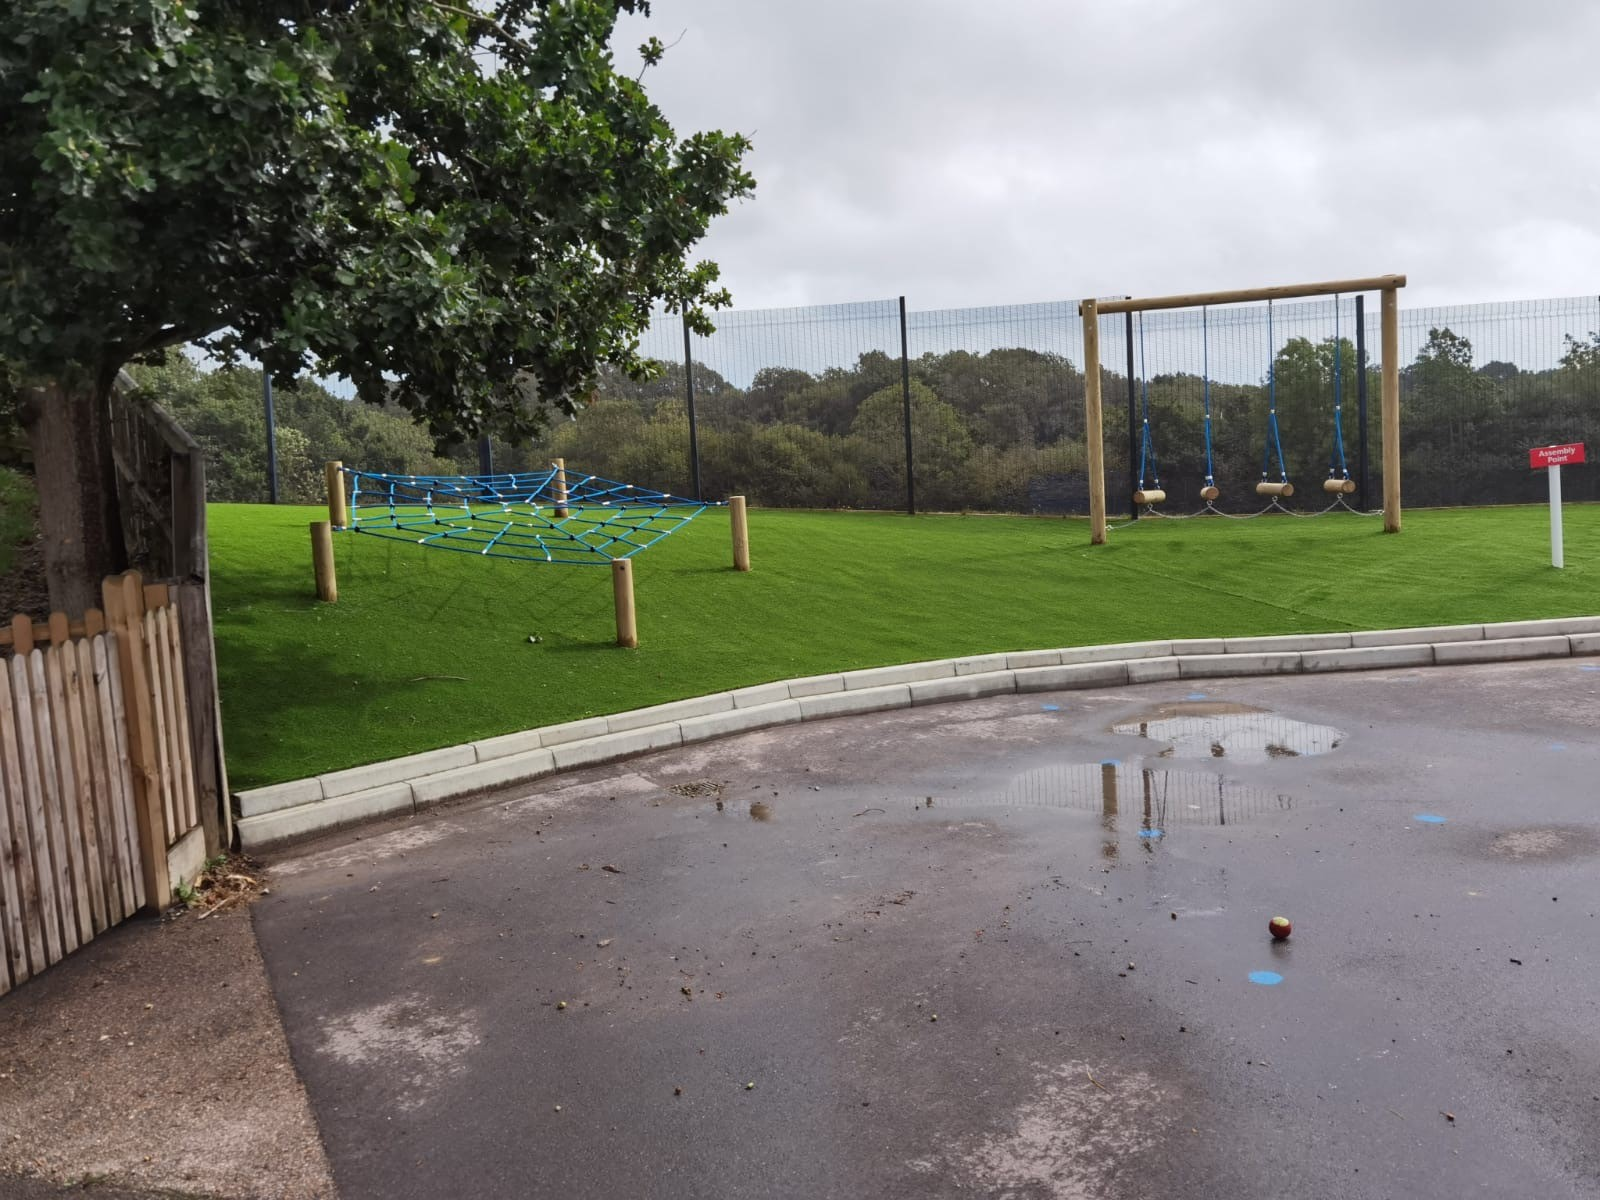 Robsack Wood Primary School – Playspaces